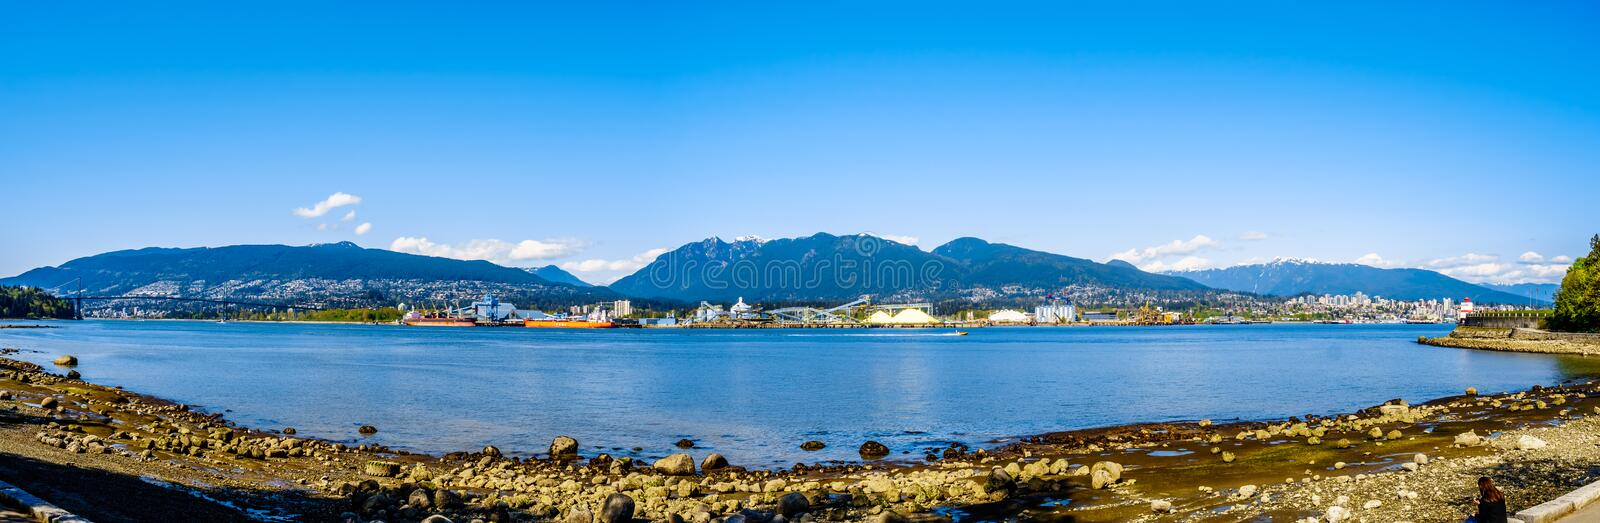 Panorama of the Burrard Inlet, the entrance into Vancouver Harbor, in beautiful BC, Canada royalty free stock image